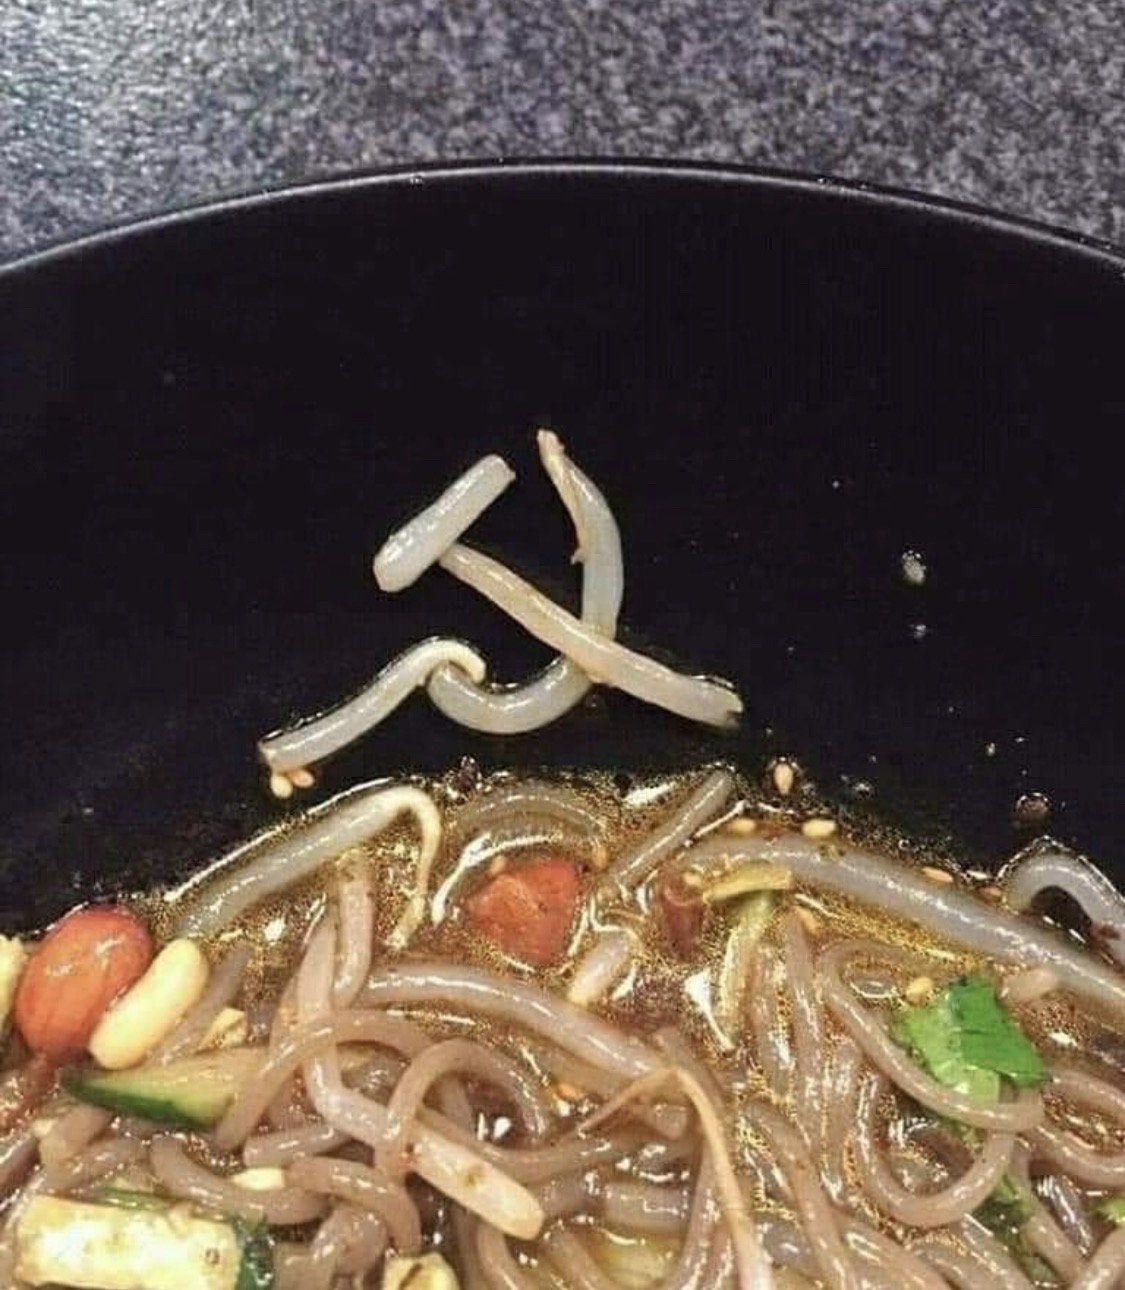 Even the noodles want to be shared.